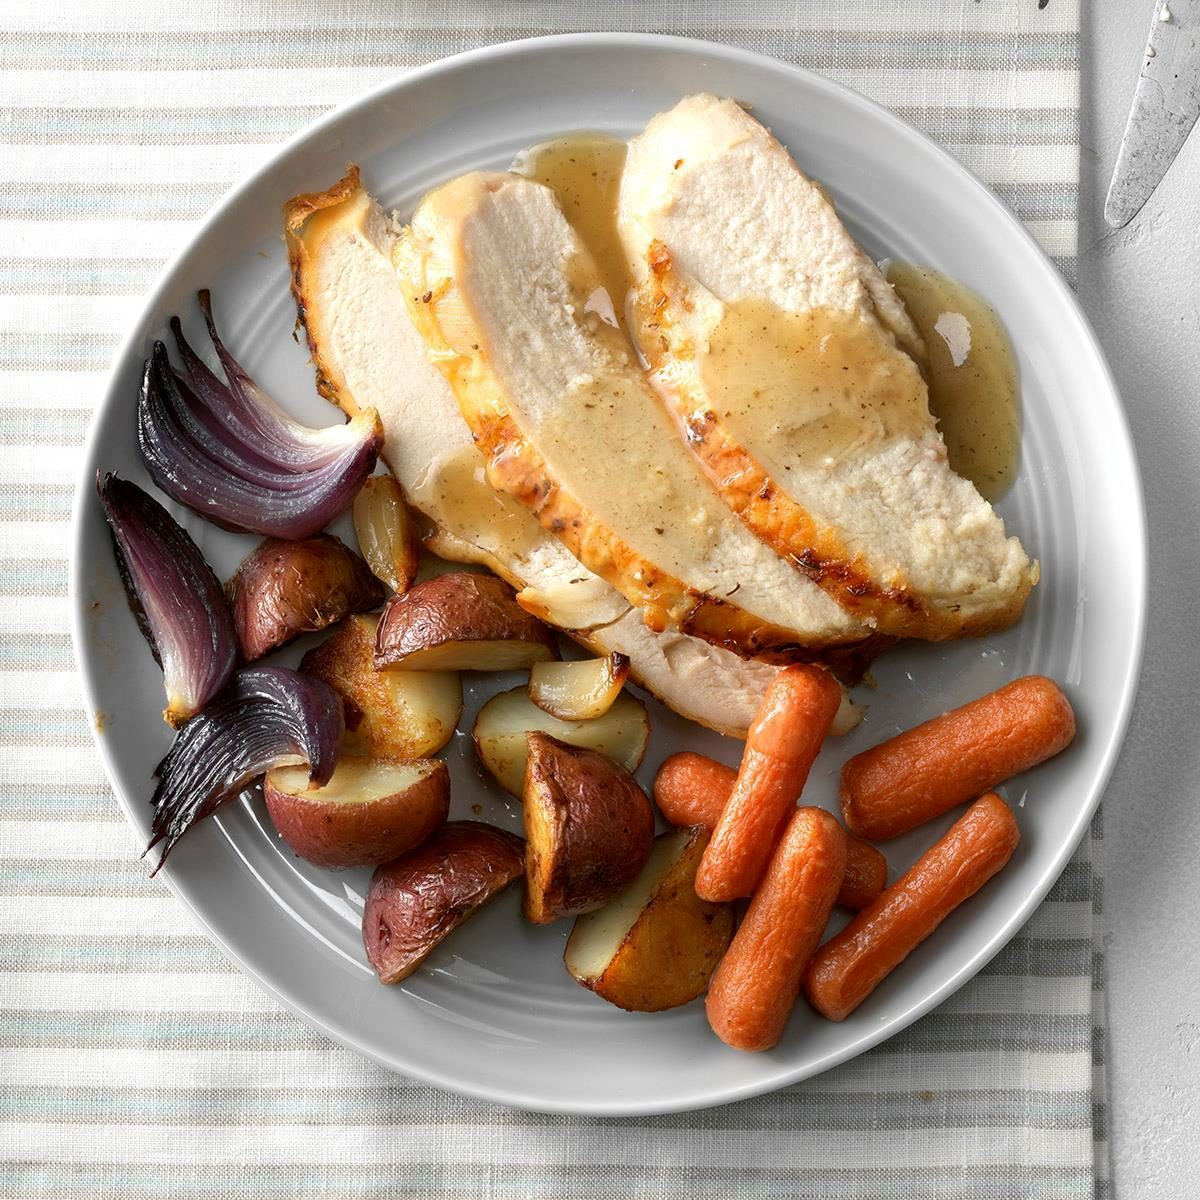 Garlic-Roasted Chicken and Vegetables